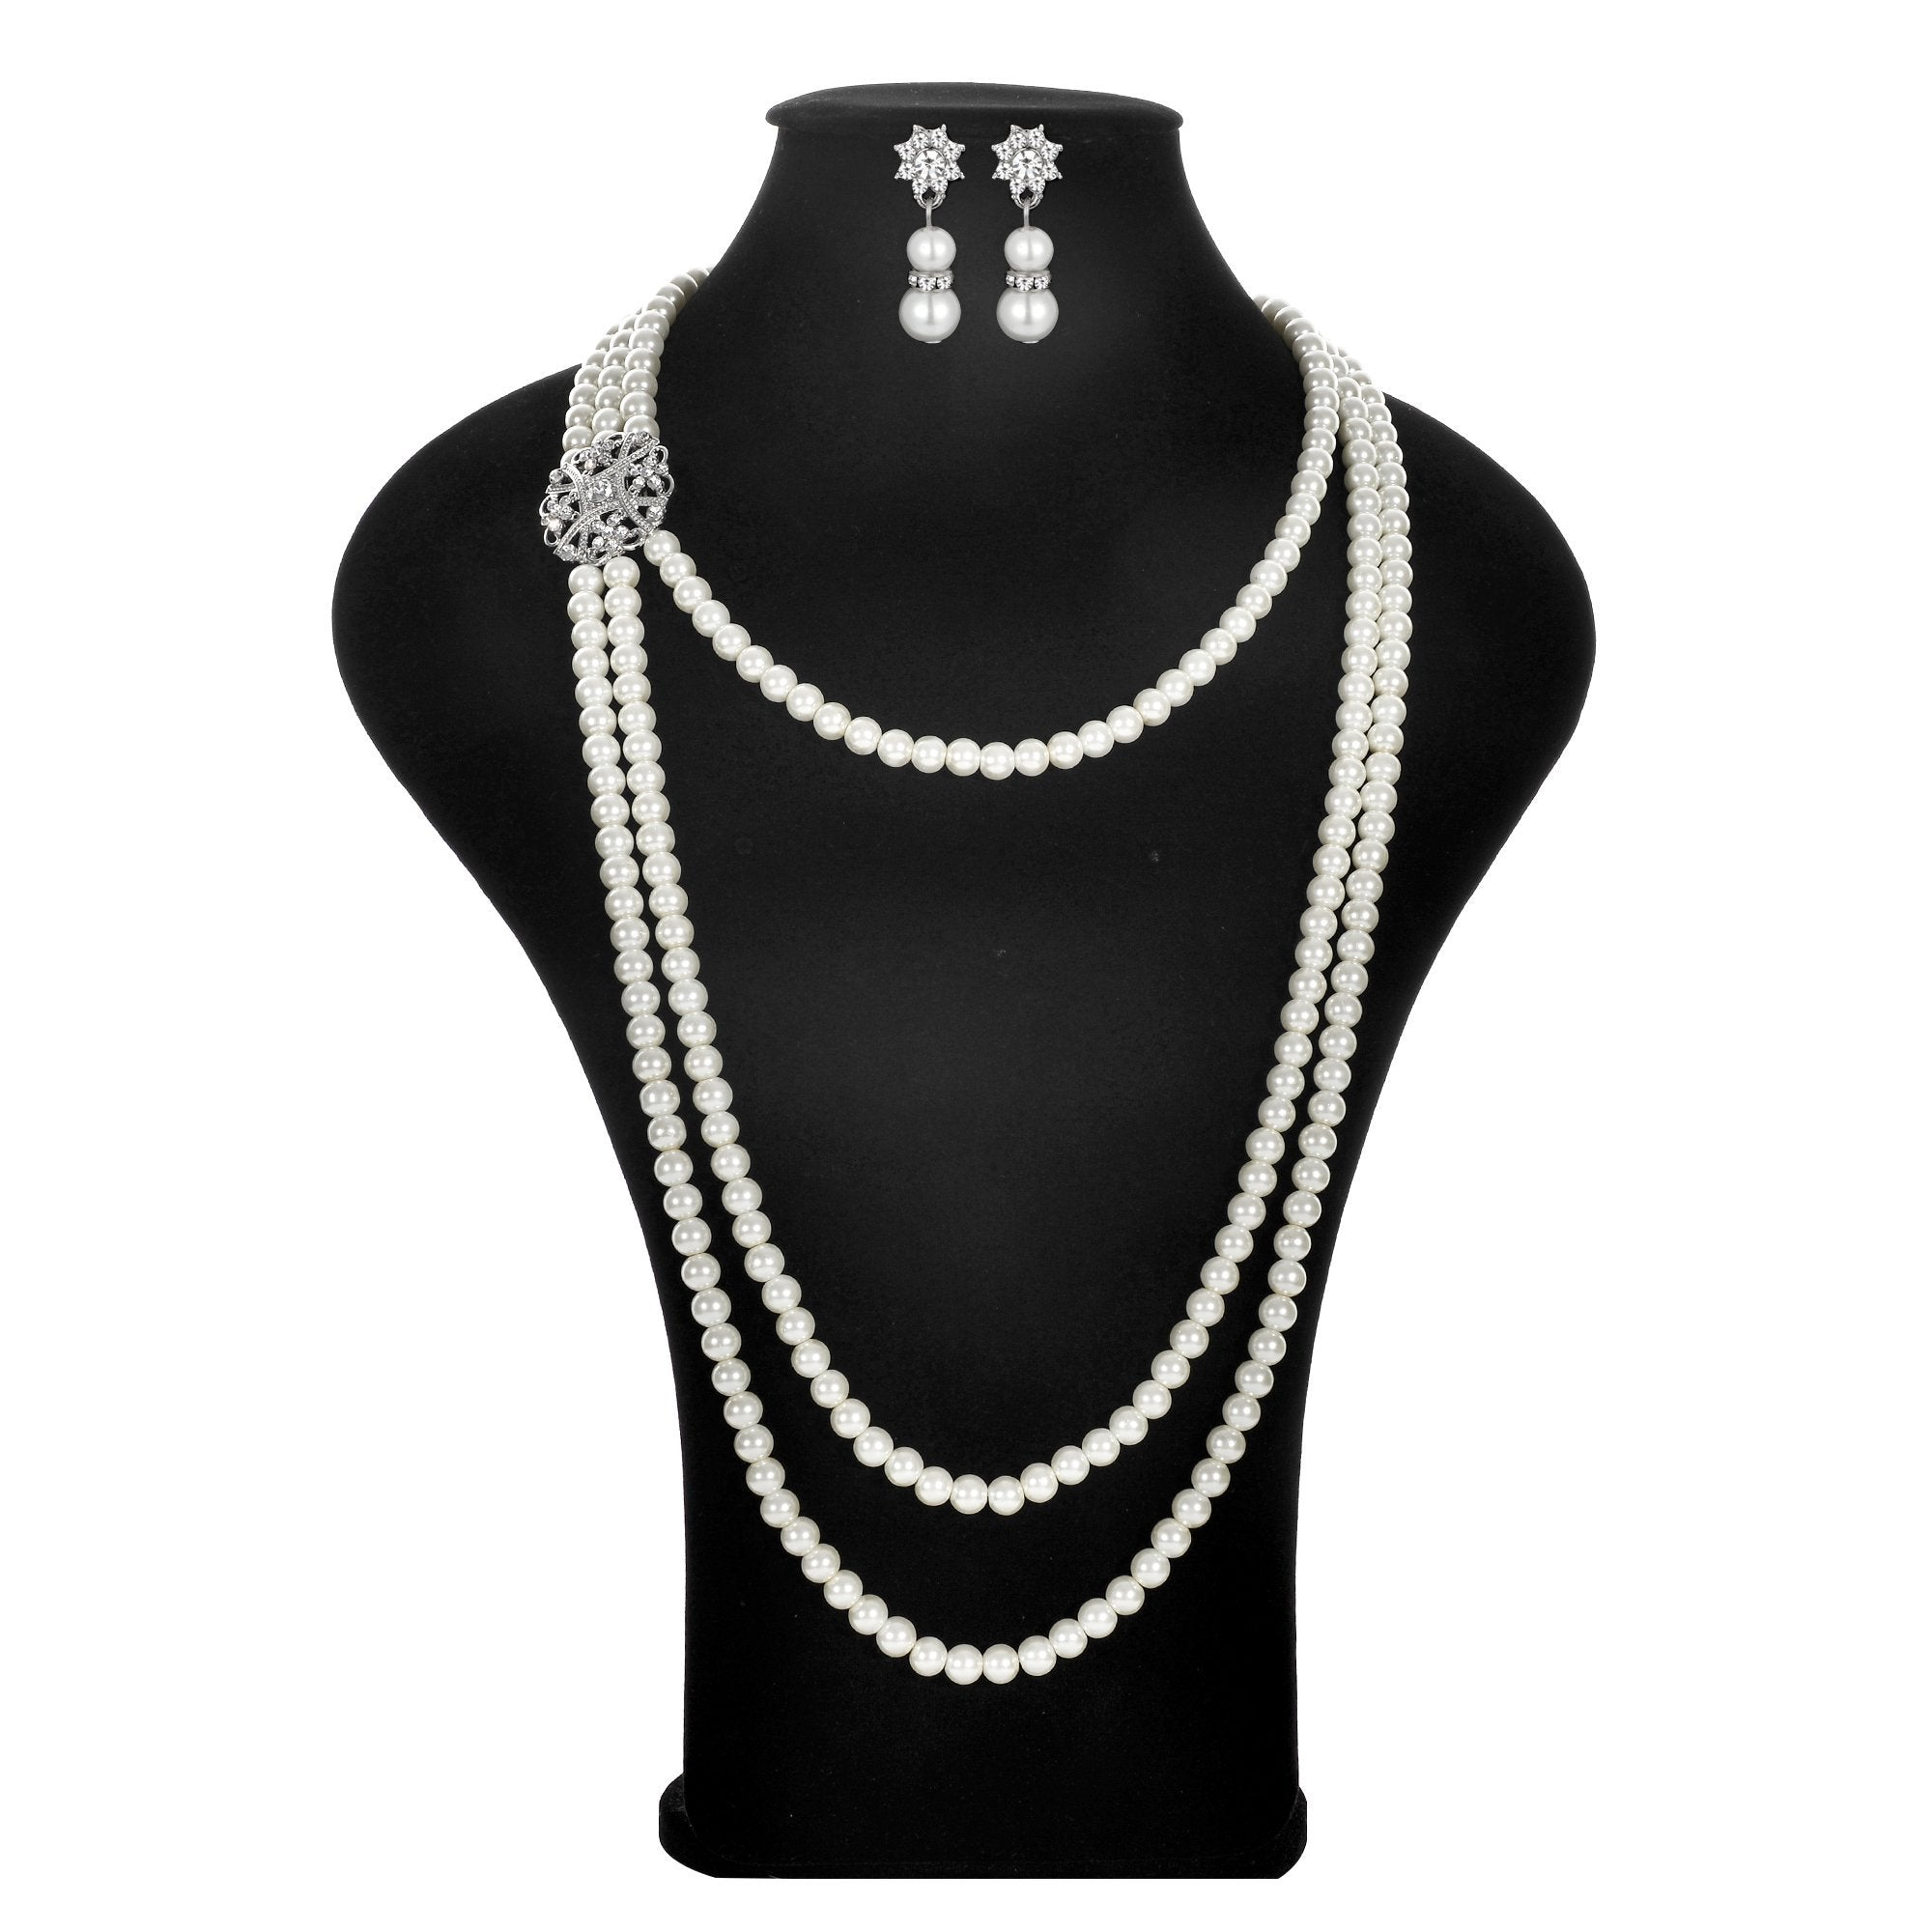 Women's 20s Multilayer Faux Pearls Flapper Long Necklace Earrings Set